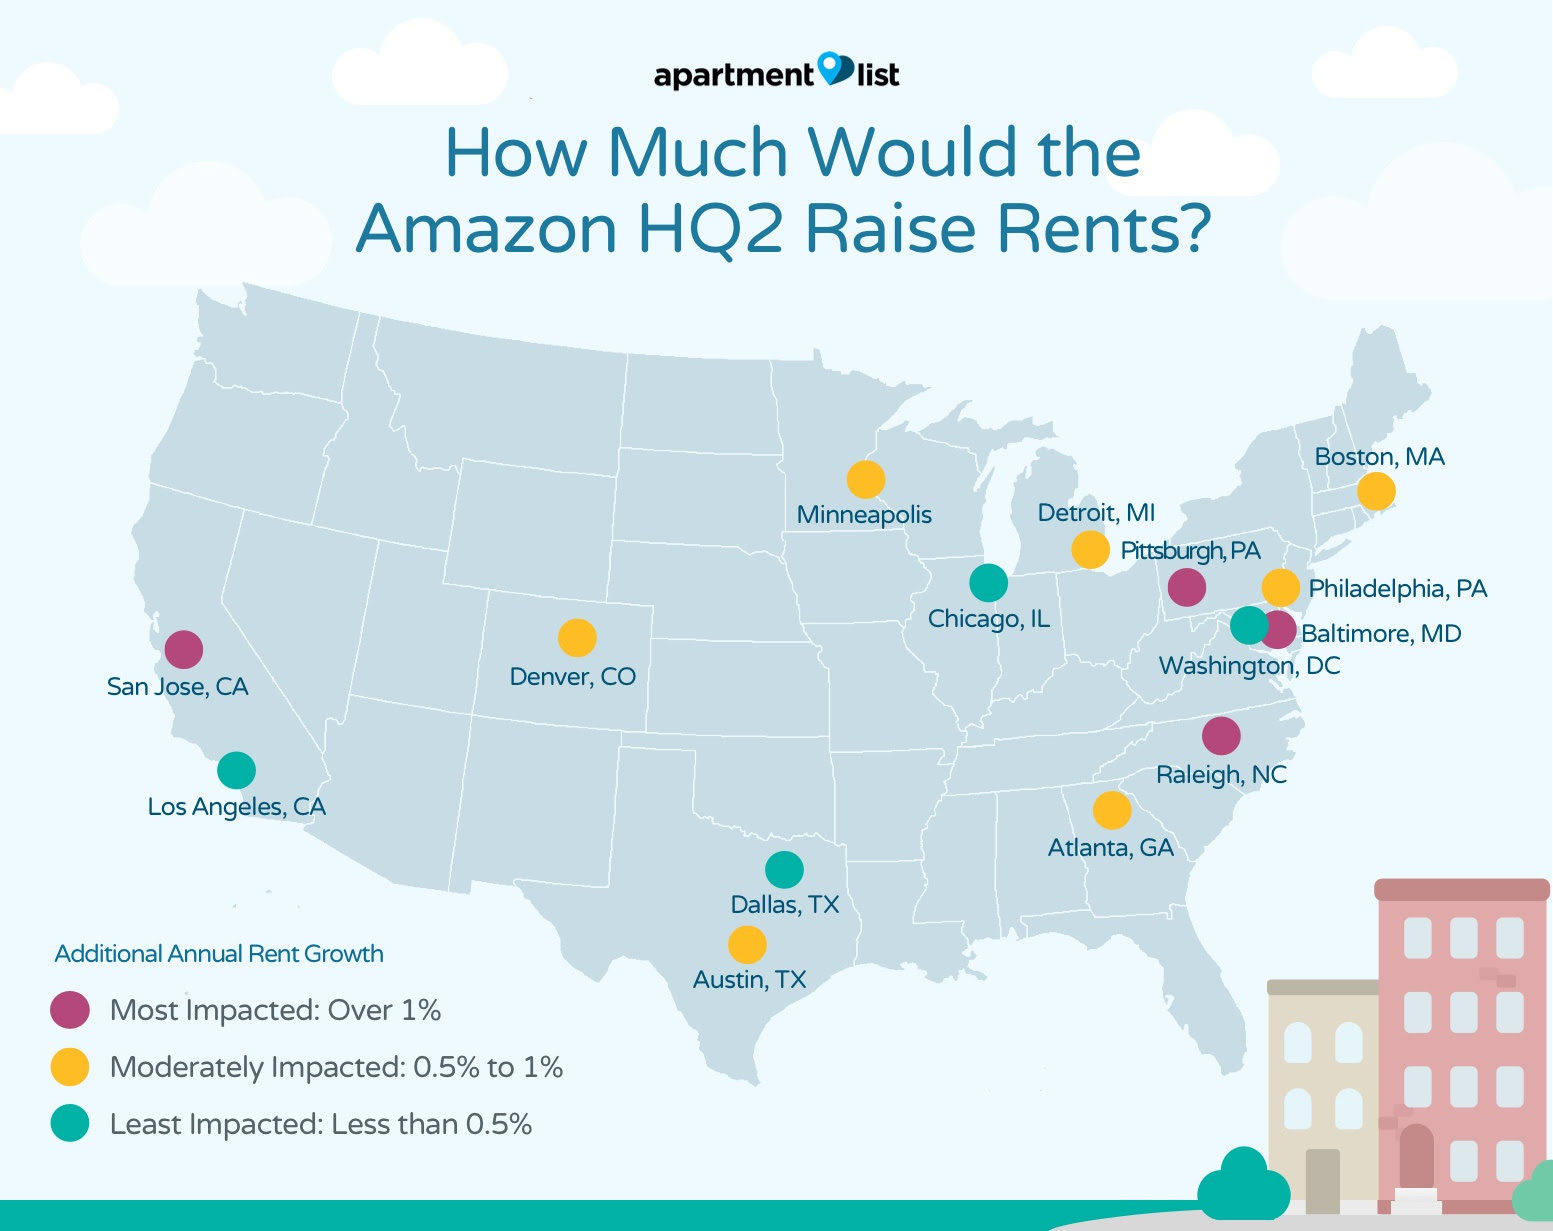 Amazon HQ2 Could Mean Higher Rents For Dallas Area ...